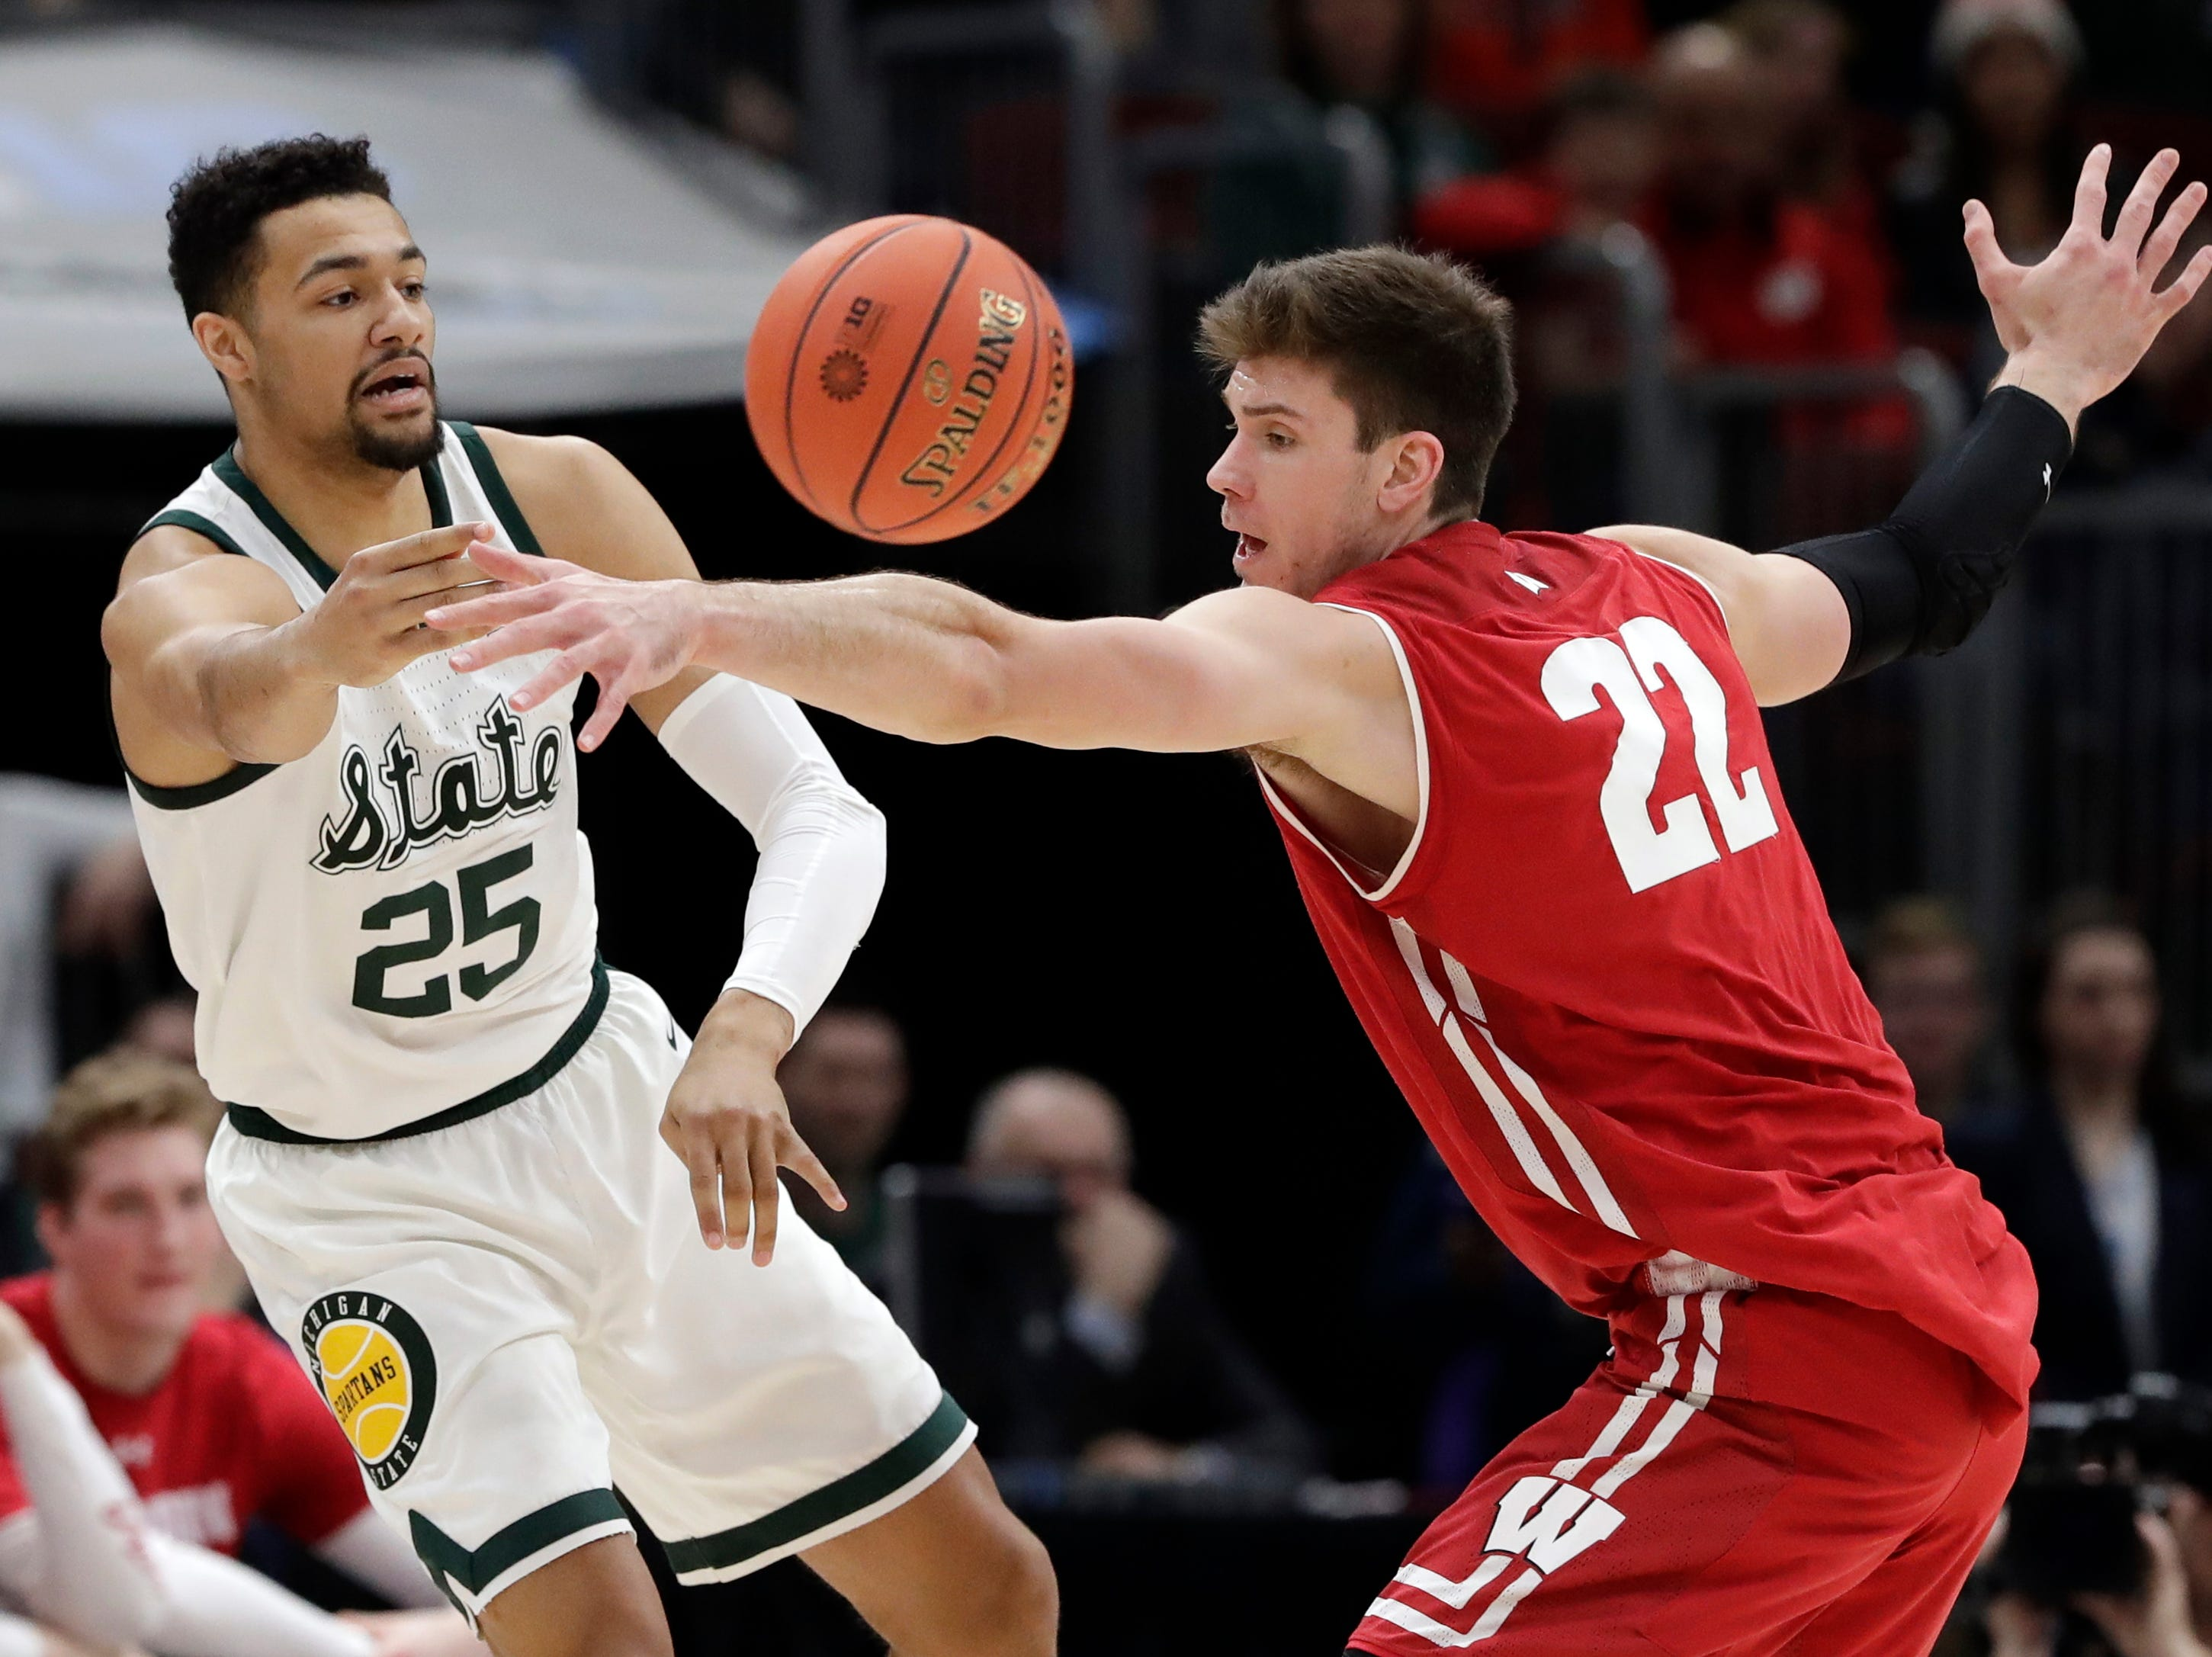 Michigan State's Kenny Goins (25) pass the ball around Wisconsin's Ethan Happ (22) during the first half of an NCAA college basketball game in the semifinals of the Big Ten Conference tournament, Saturday, March 16, 2019, in Chicago.